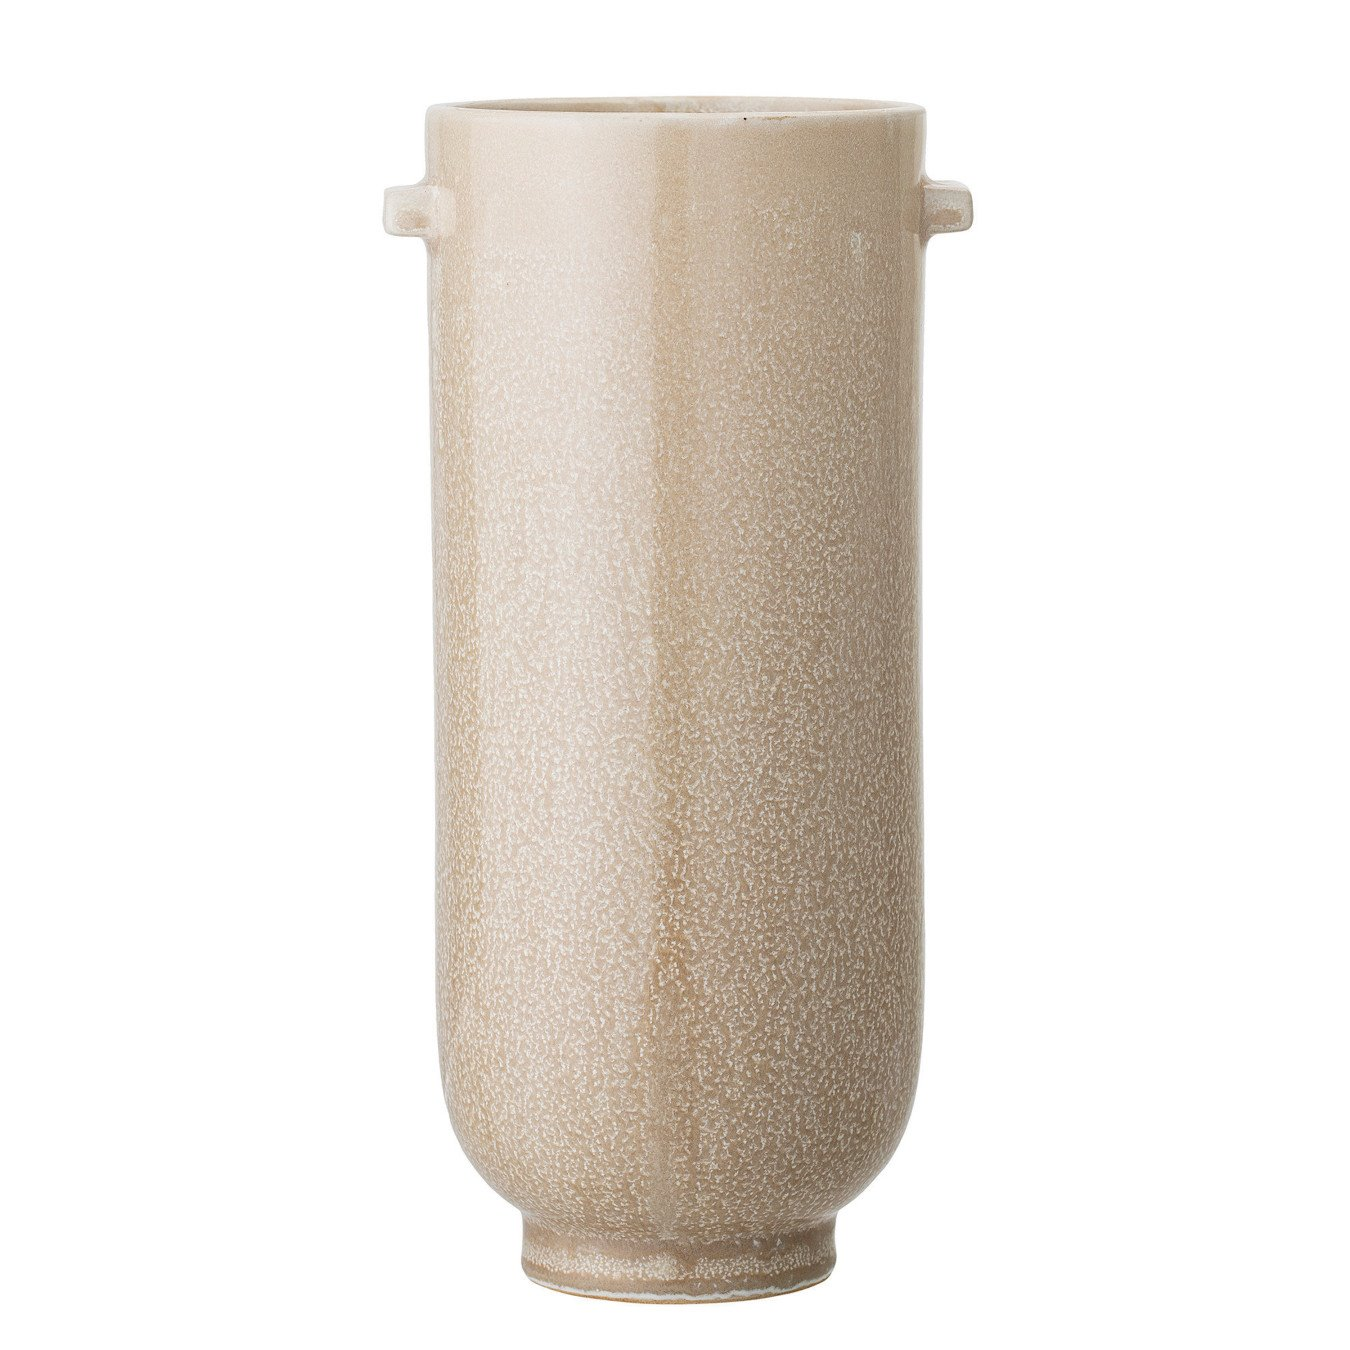 Brown Stoneware Vase with Handles & Cream Reactive Glaze Finish (Each one will vary)